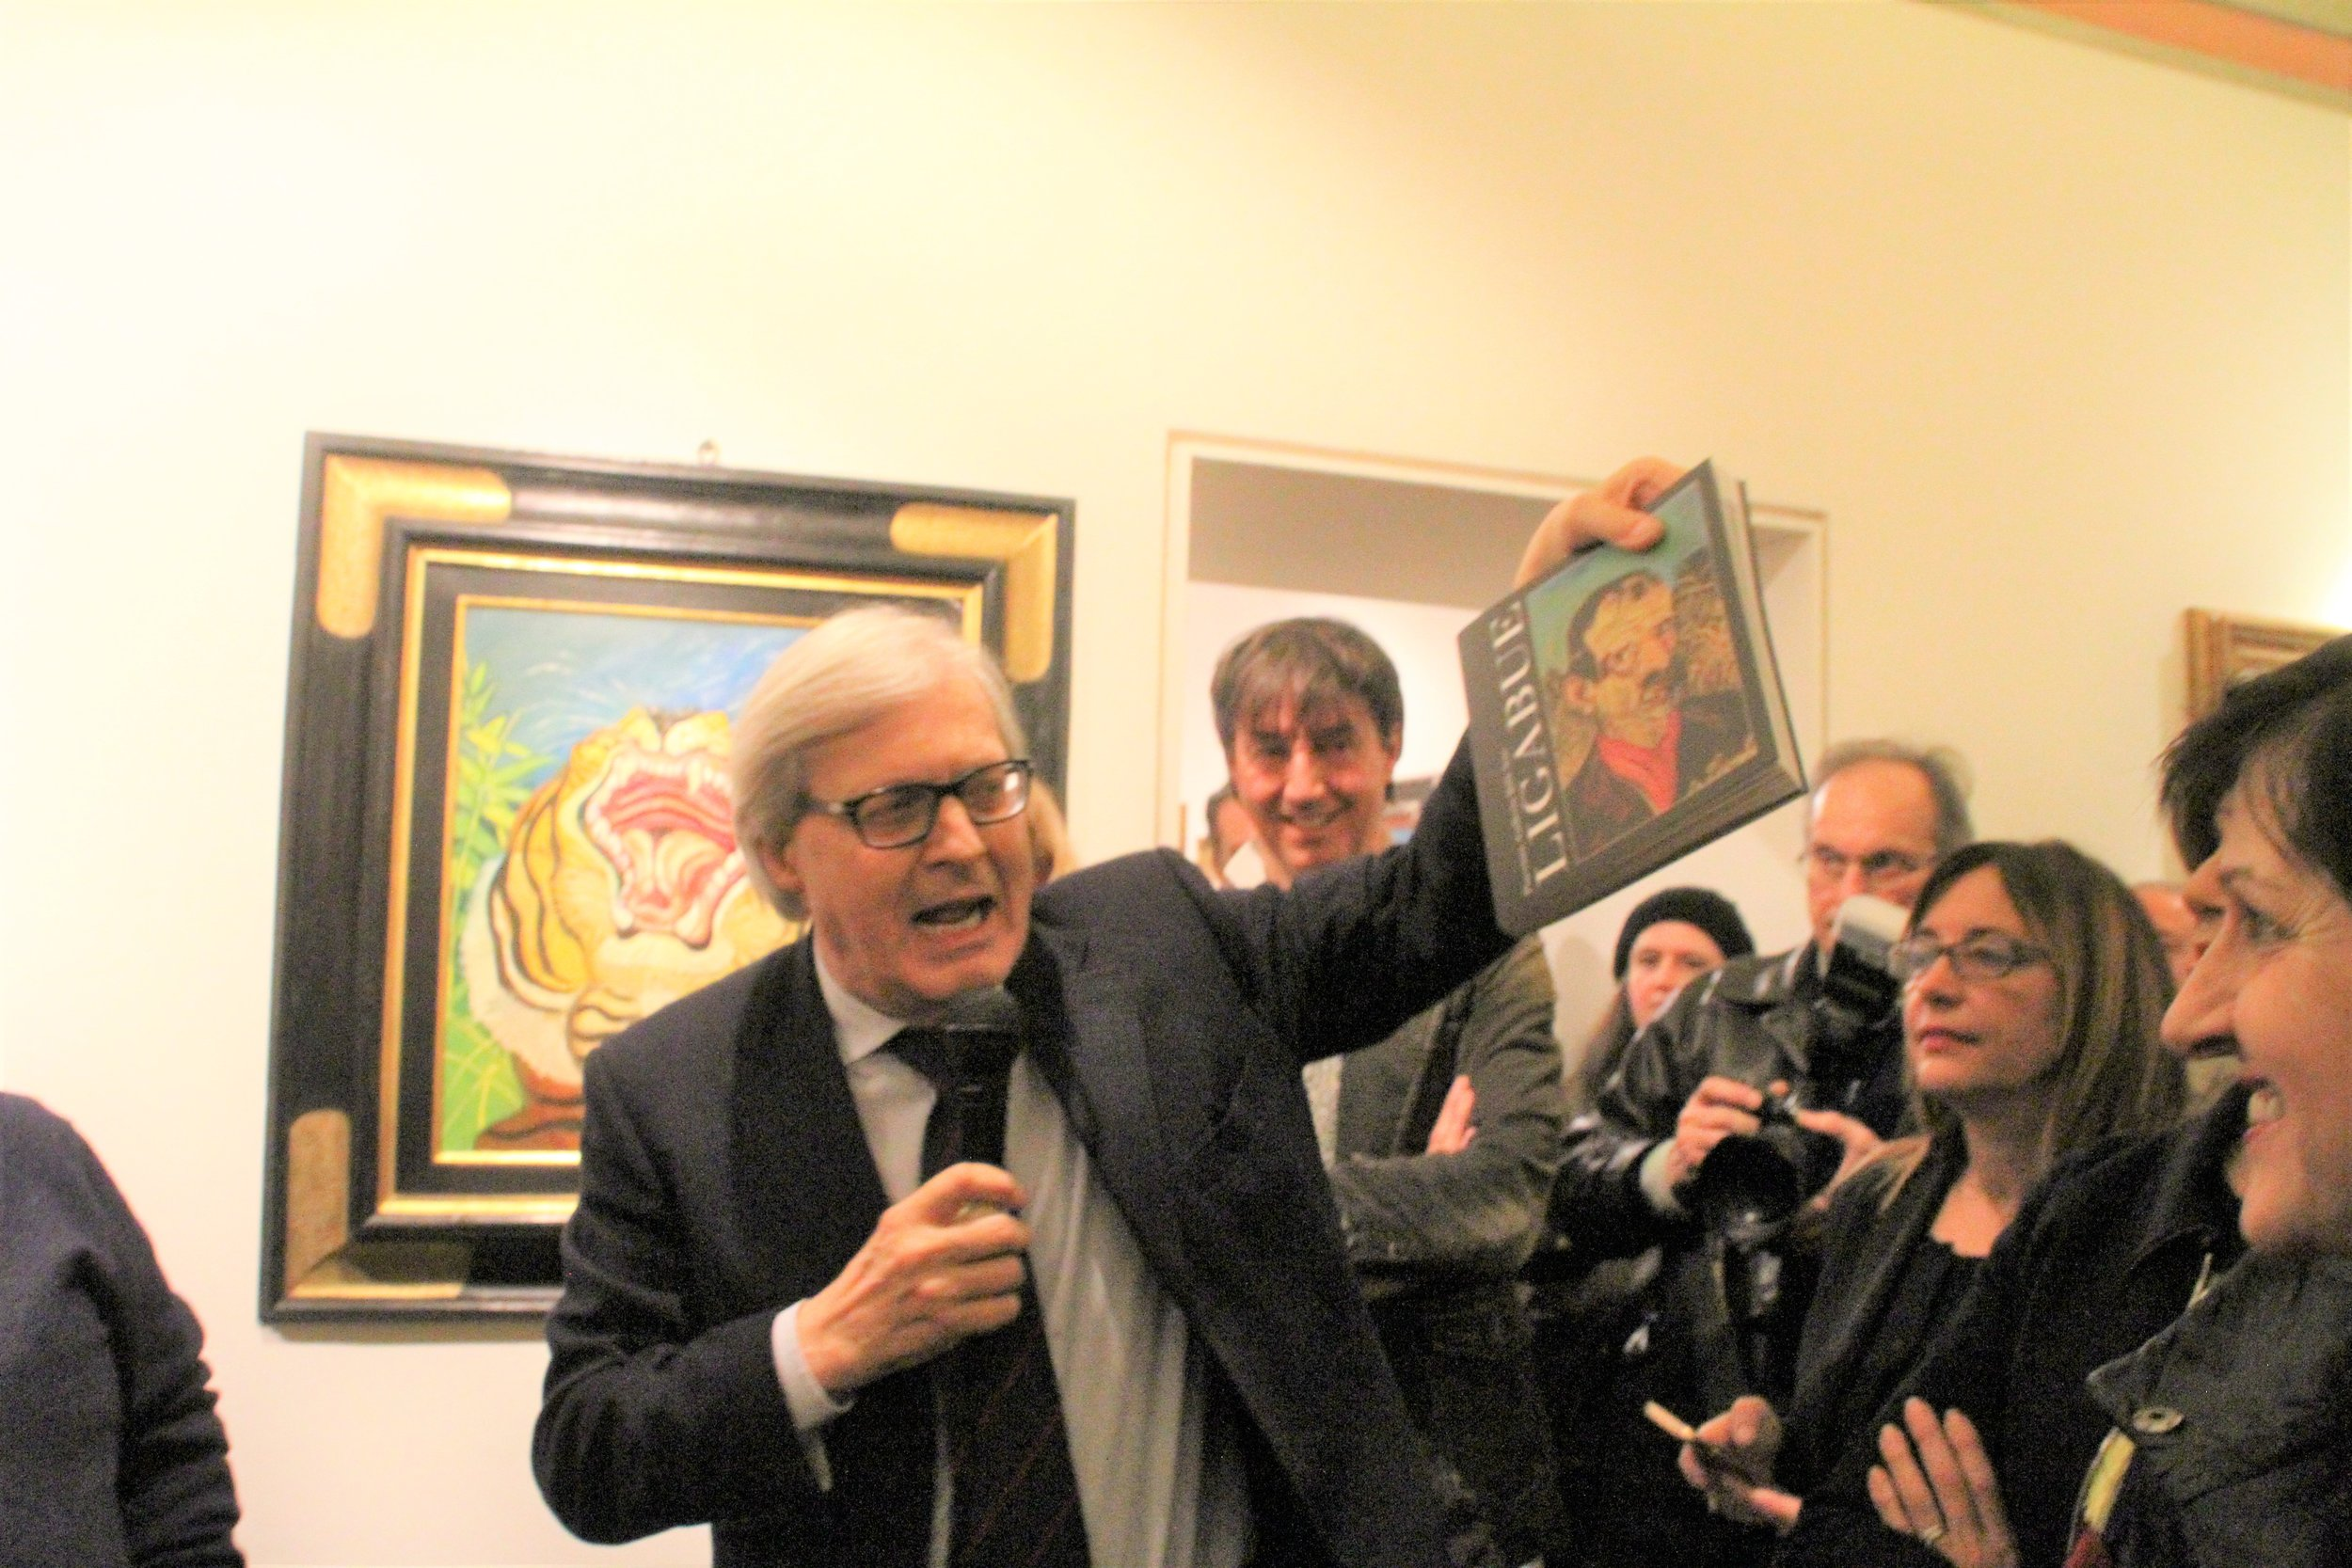 Prof. Vittorio Sgarbi spoke at the exhibition's inauguration.